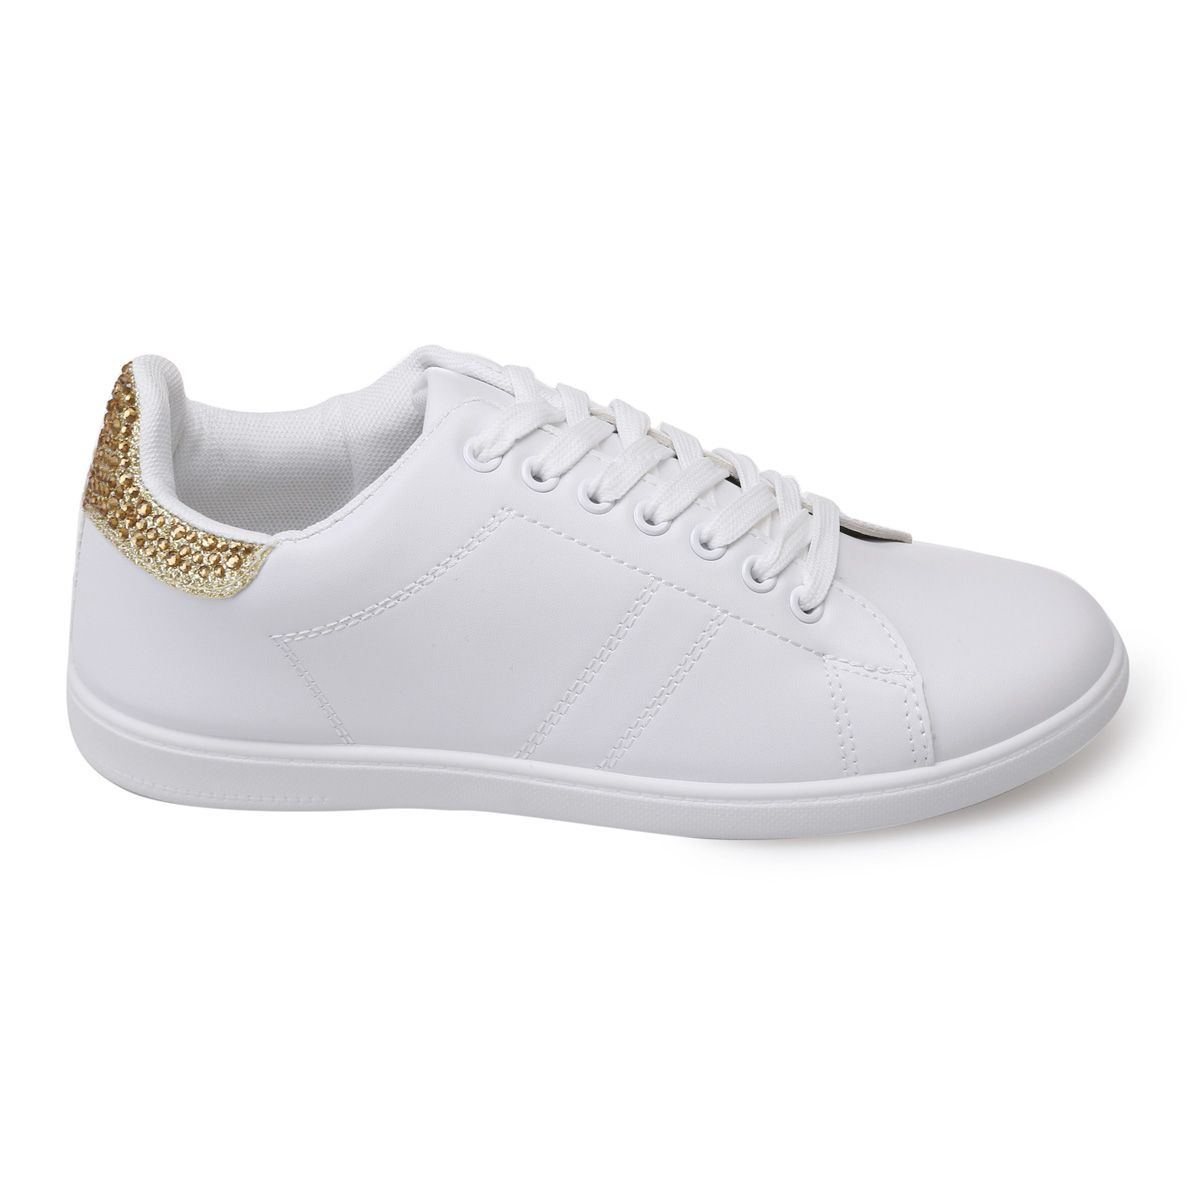 big sale 4a17d a83be baskets-blanches-en-simili-cuir-a-strass-dores.jpg